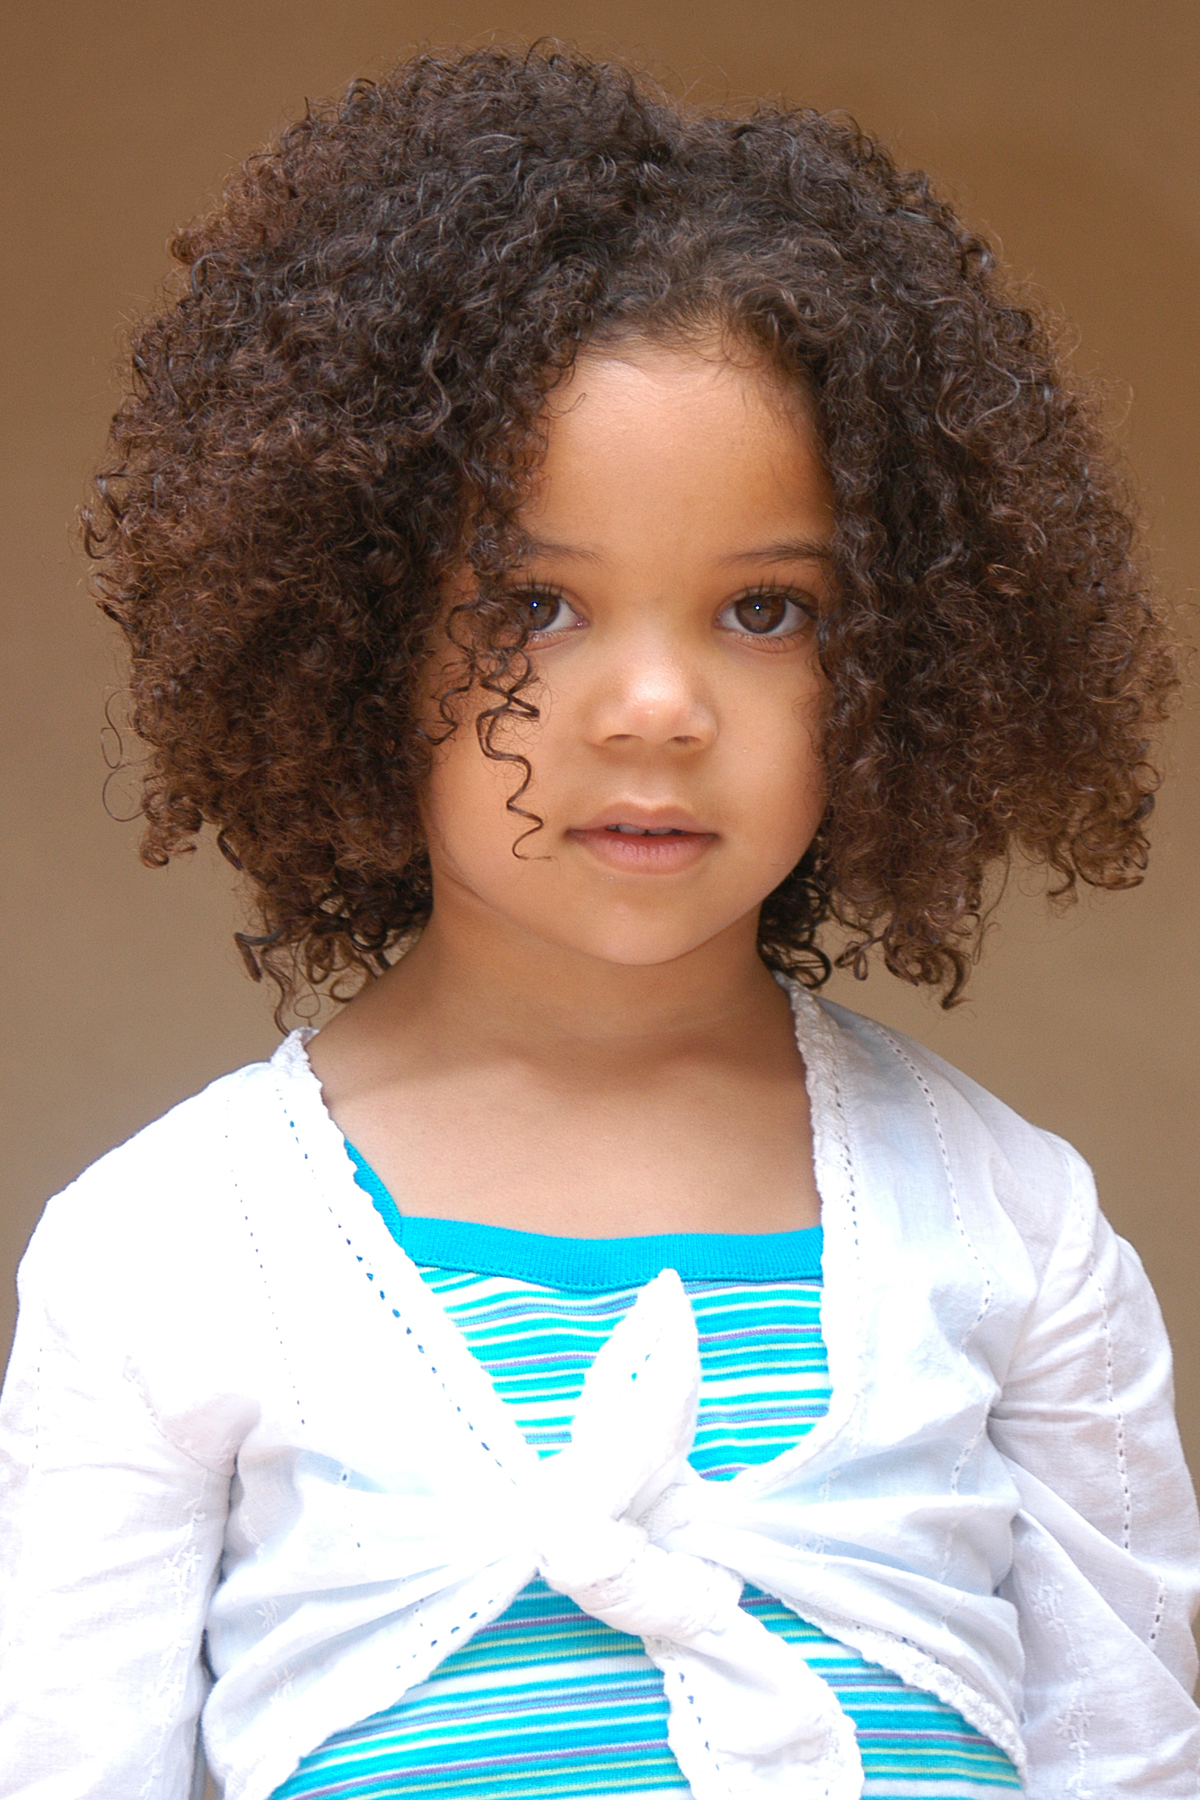 Hairstyles for Mixed Girls with Curly Hair